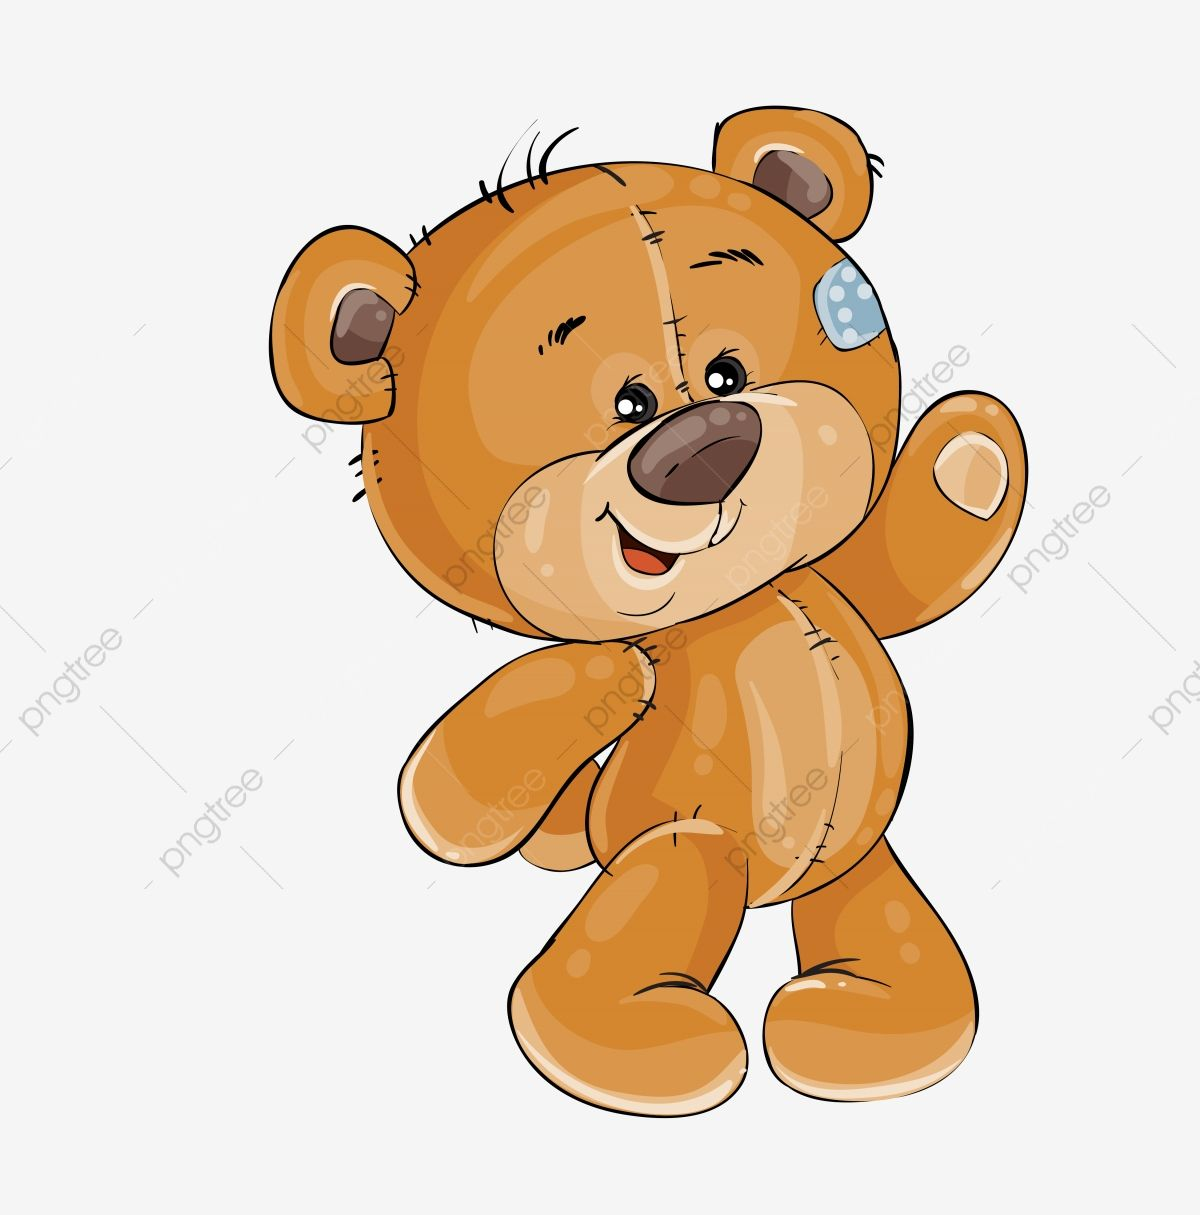 Vector Clip Art Art Illustration Teddy Bear Waving Its Paw Print Teddy Clipart Template Design Element Png And Vector With Transparent Background For Free Do Teddy Bear Cartoon Teddy Bear Clipart